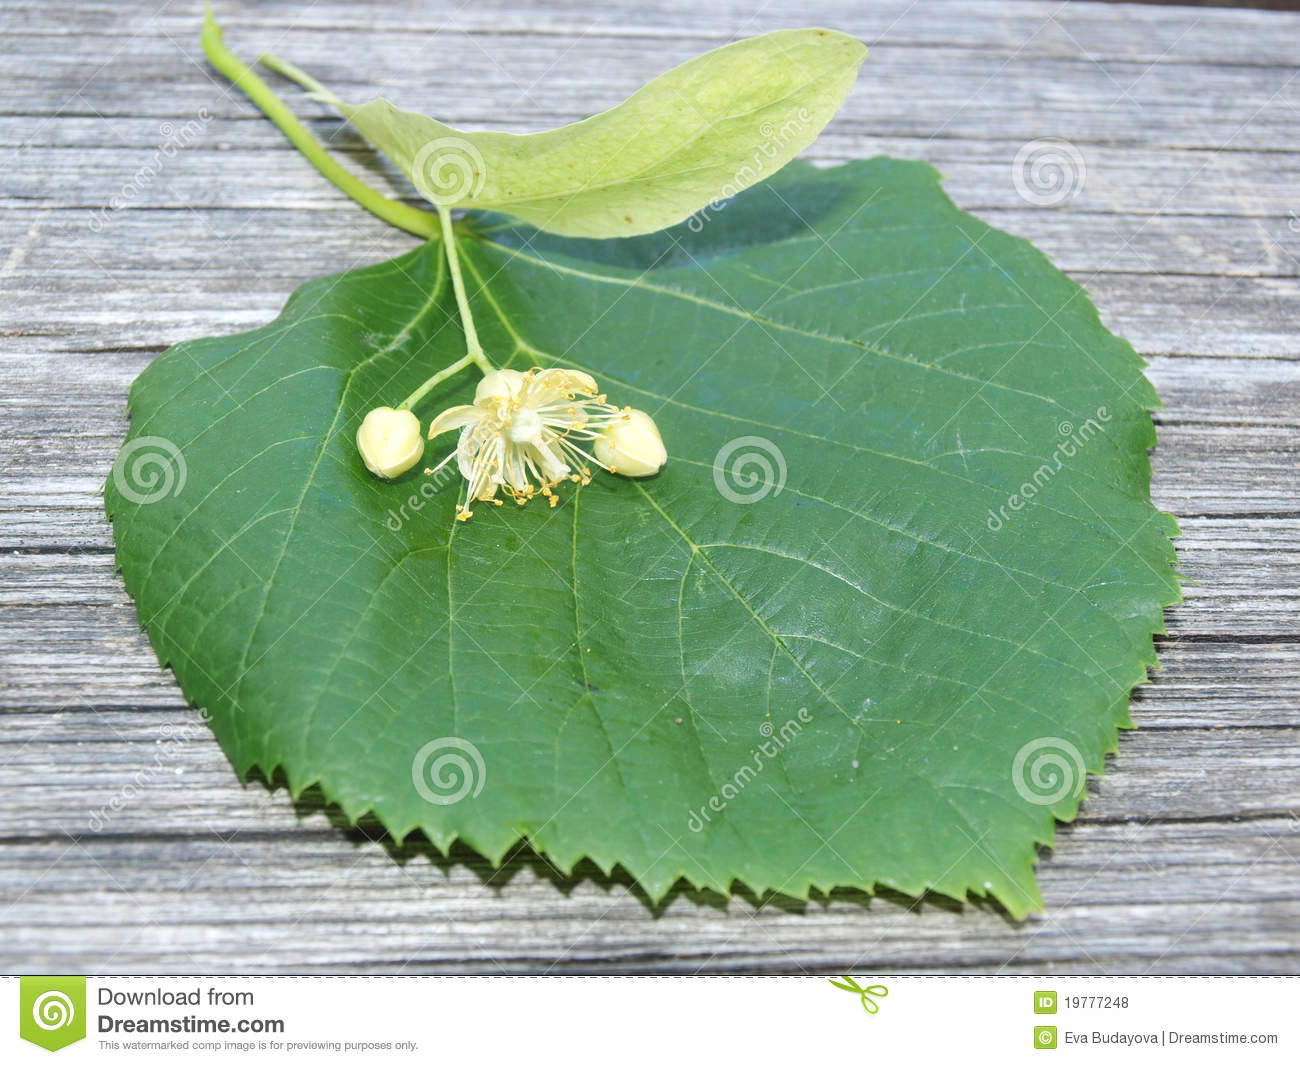 Linden Flower Royalty Free Stock s Image